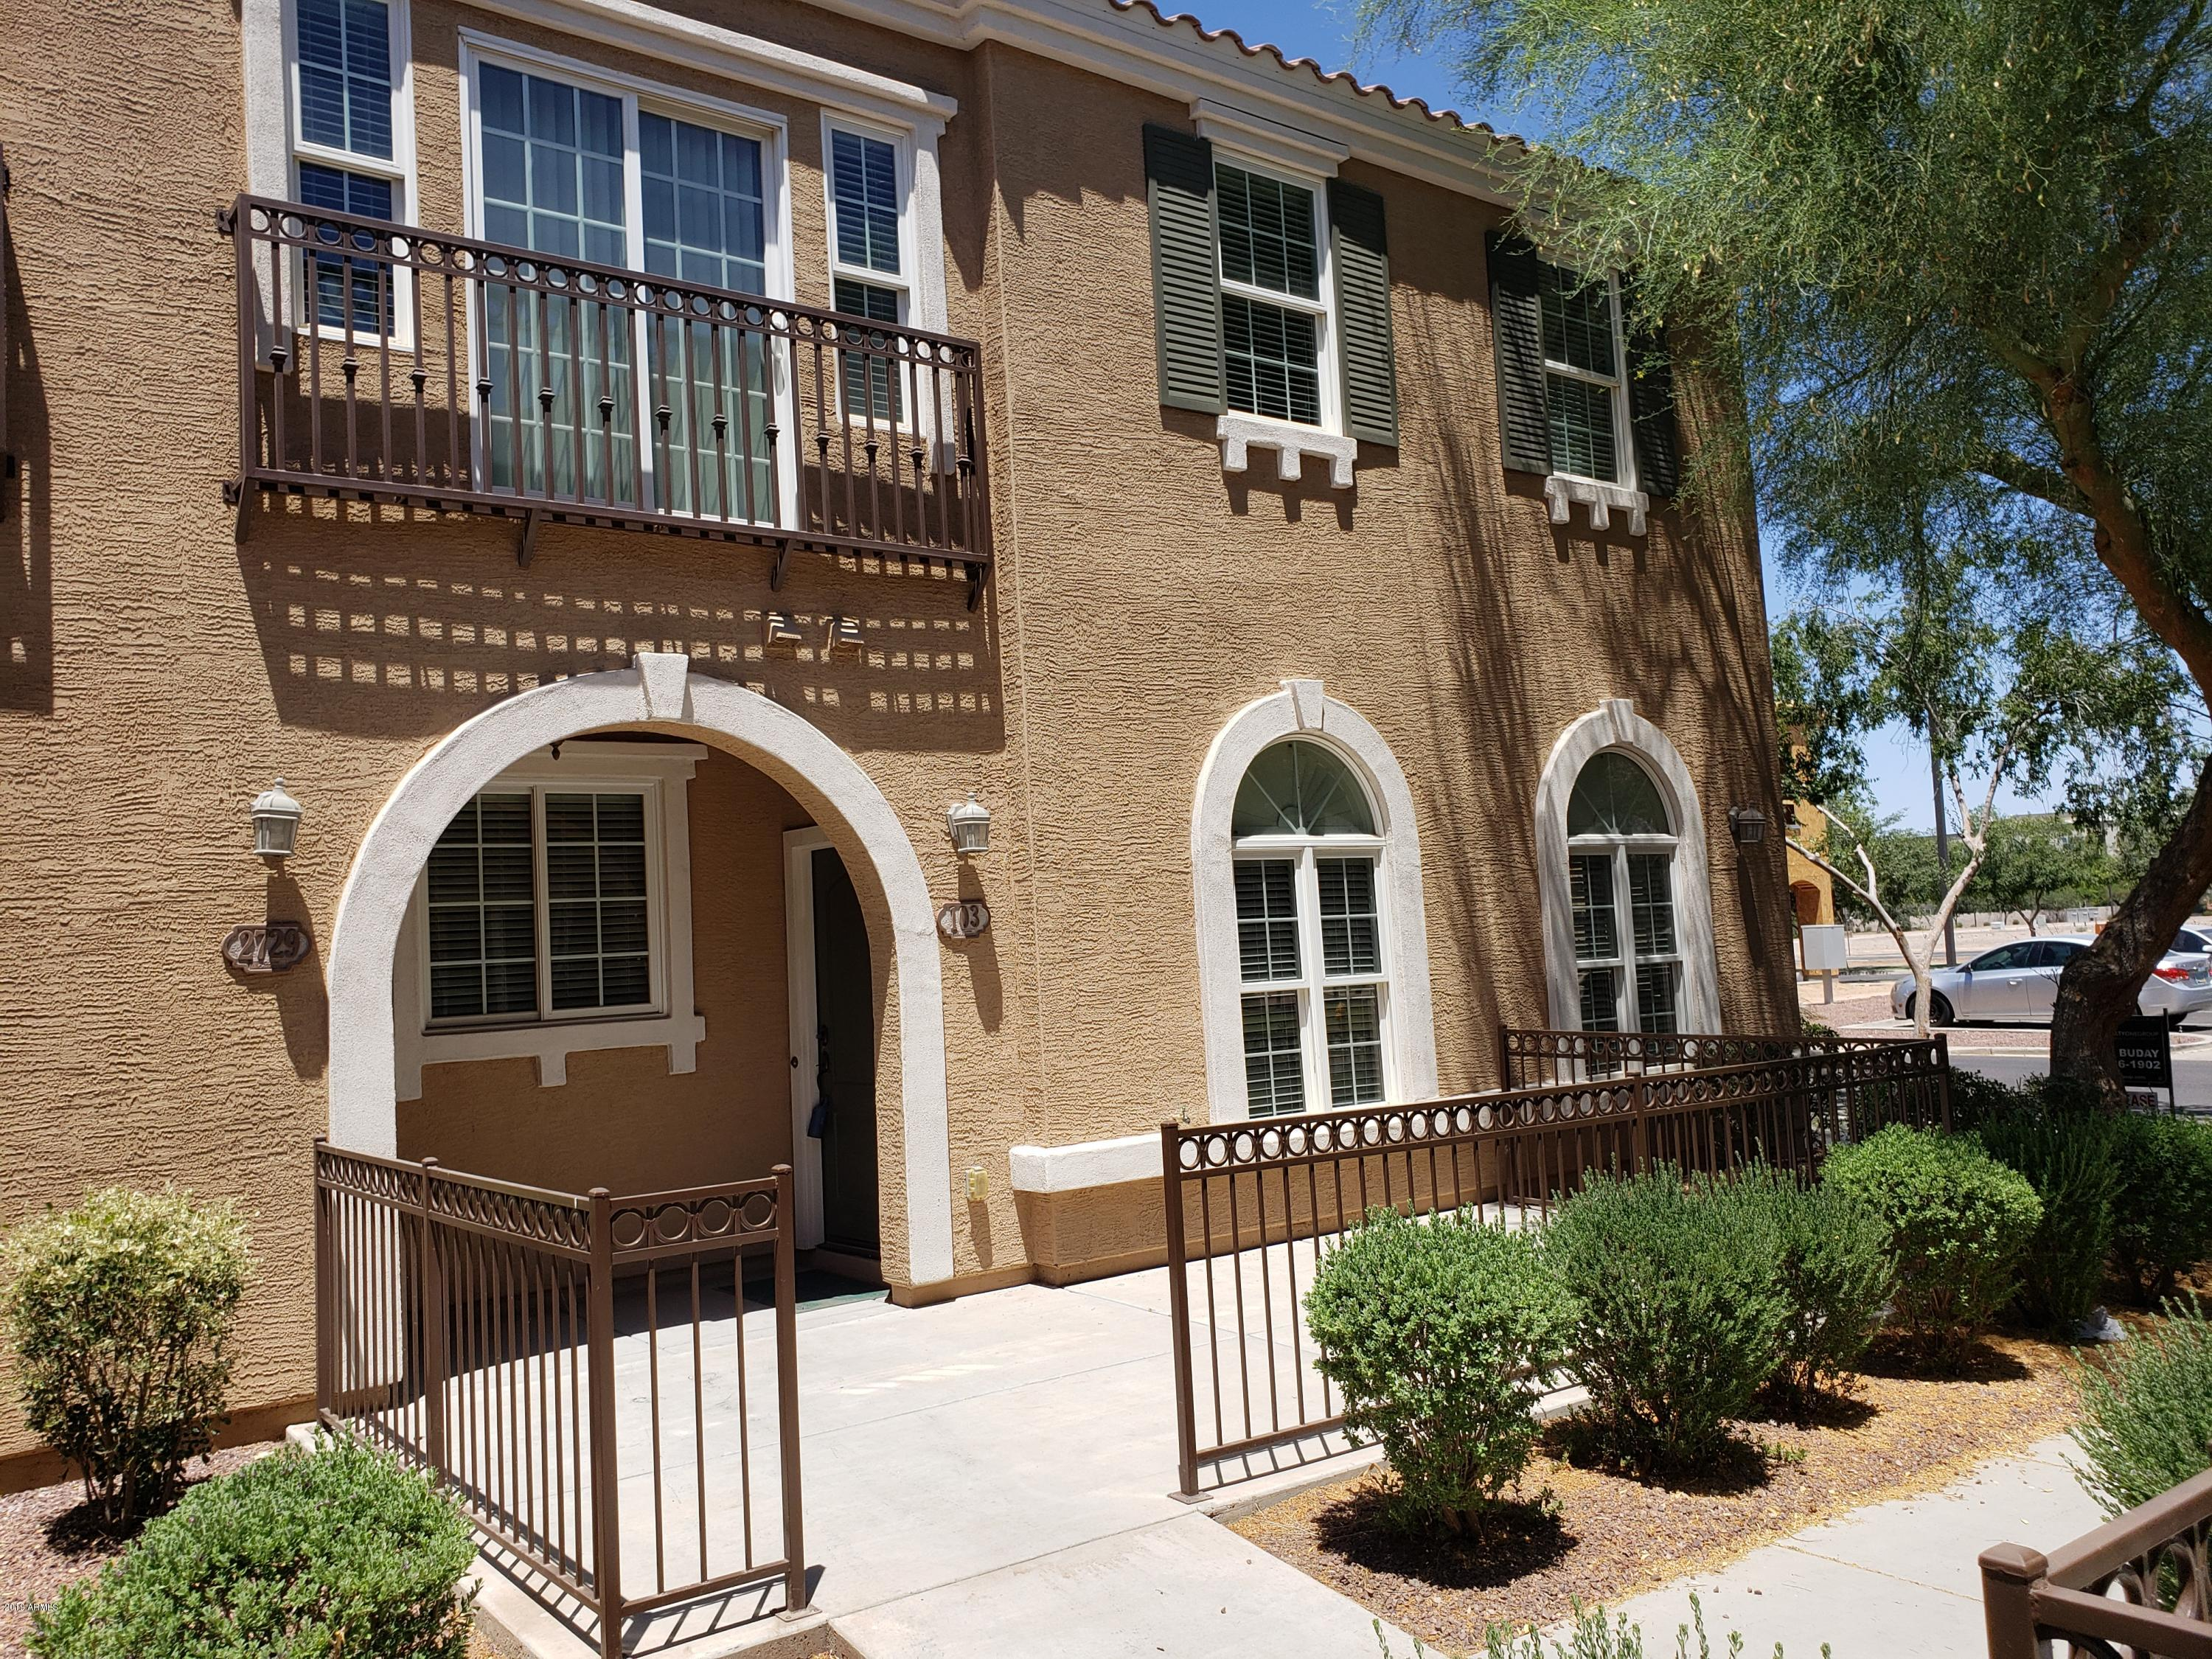 Photo of 2729 S Sulley Drive #103, Gilbert, AZ 85296